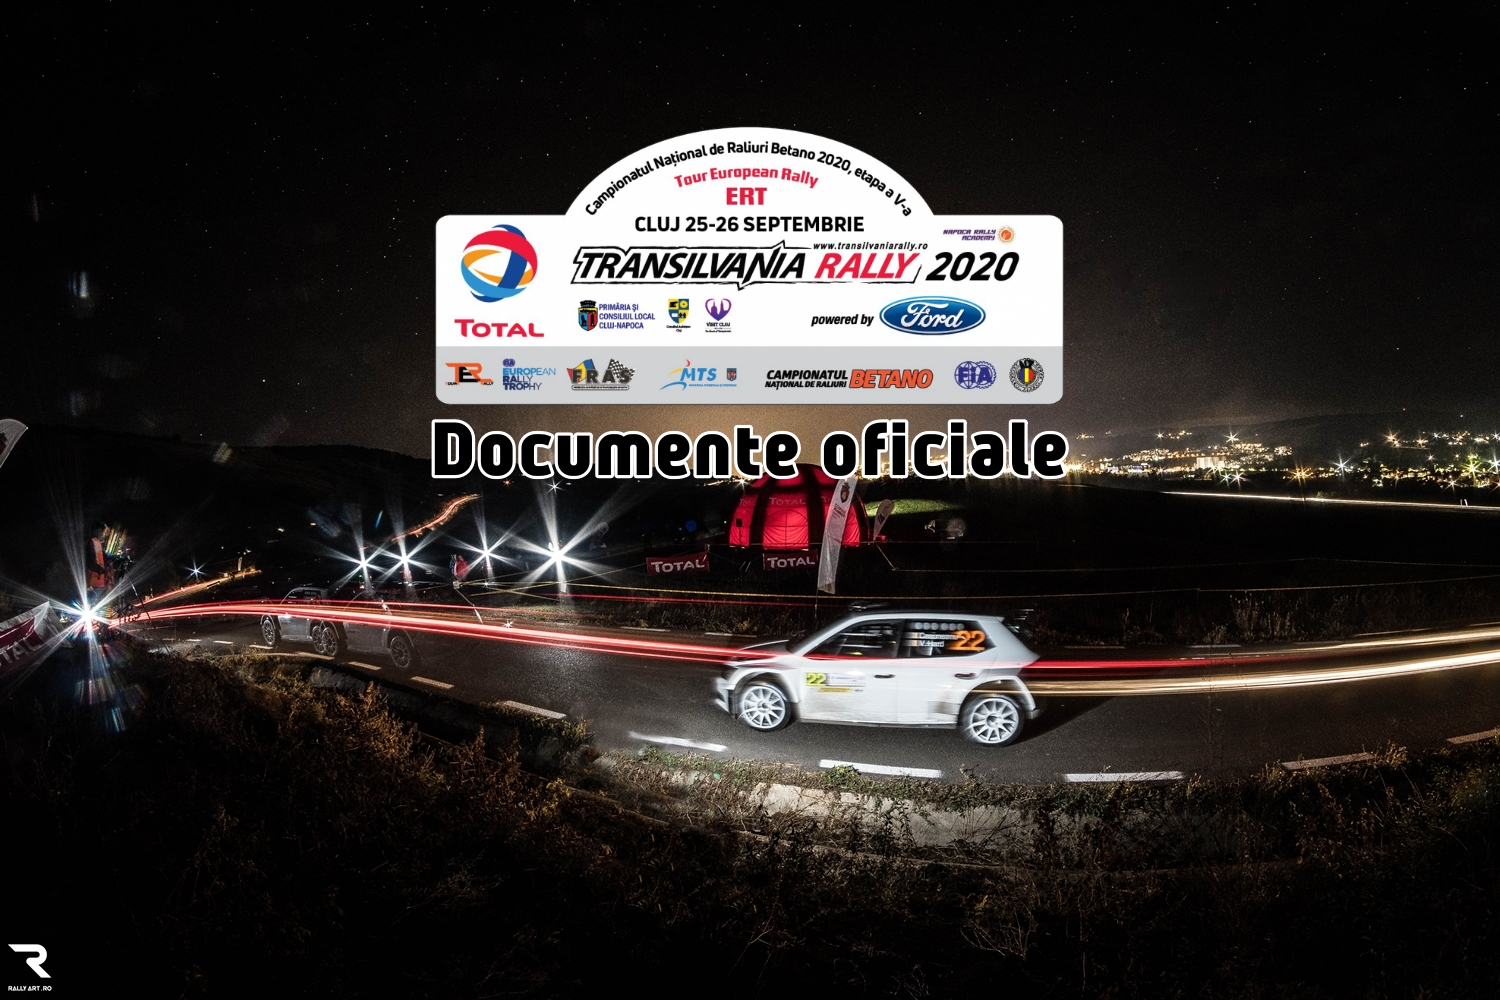 Documente oficiale Transilvania Rally 2020